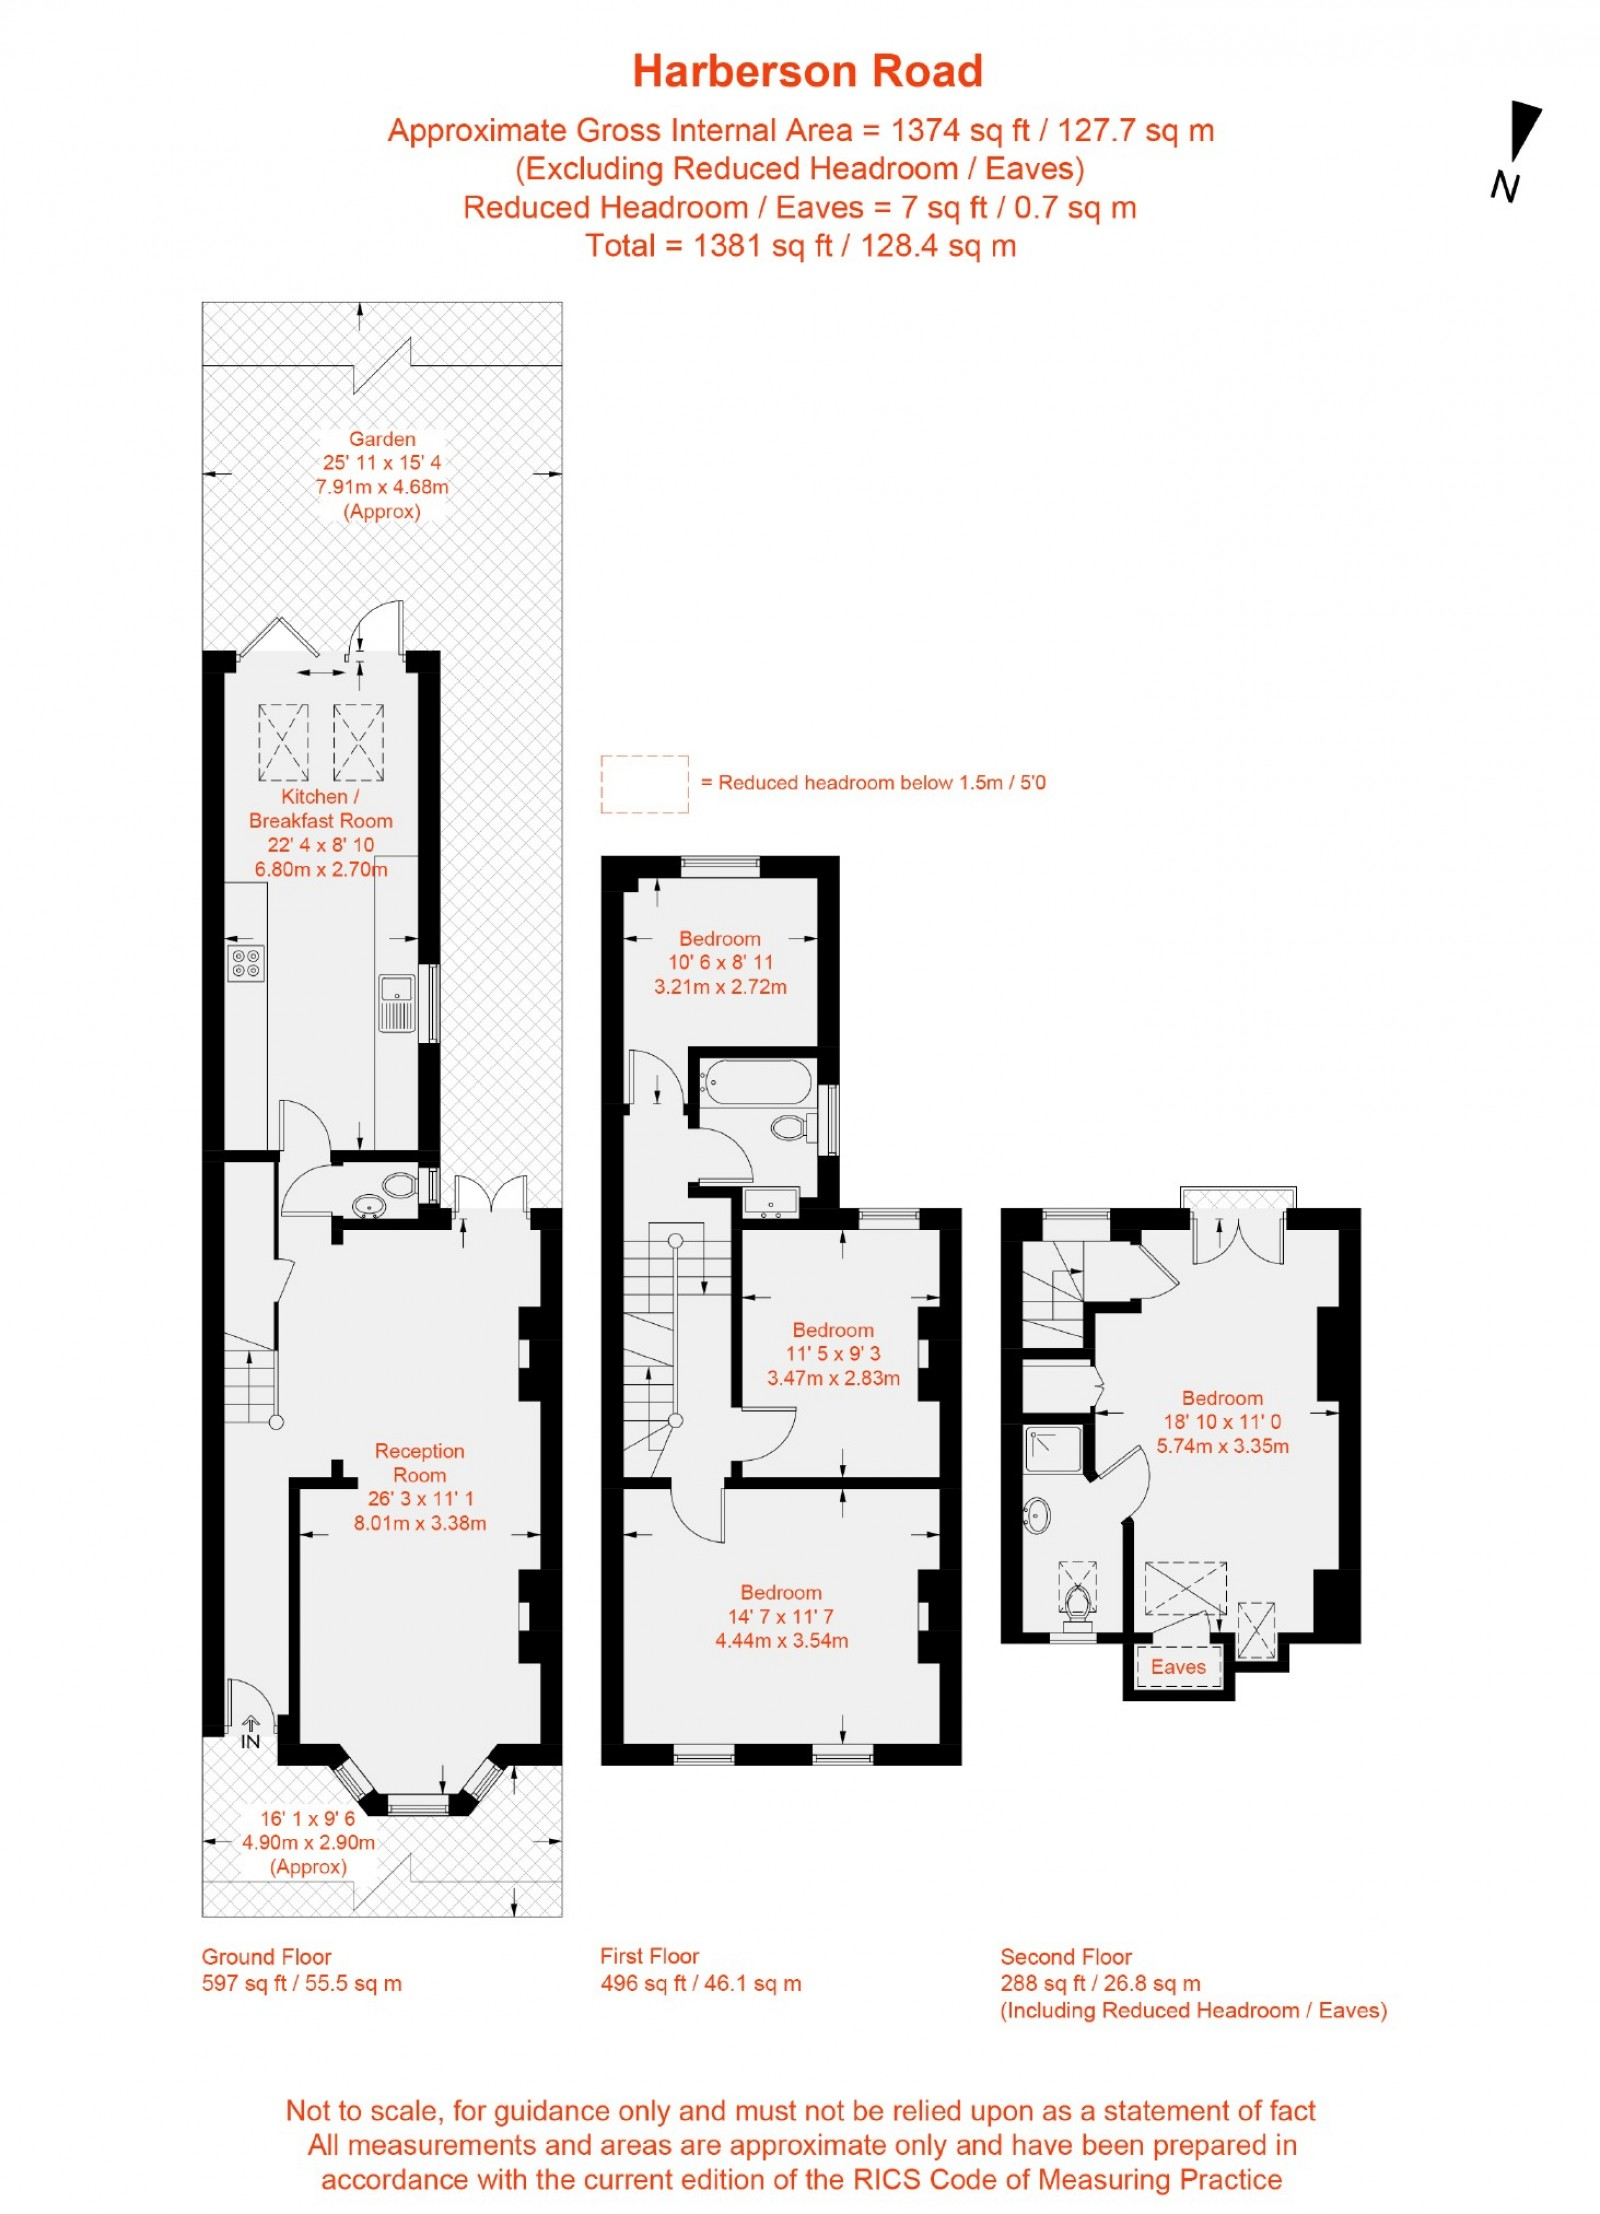 Floorplan for Harberson Road, Balham